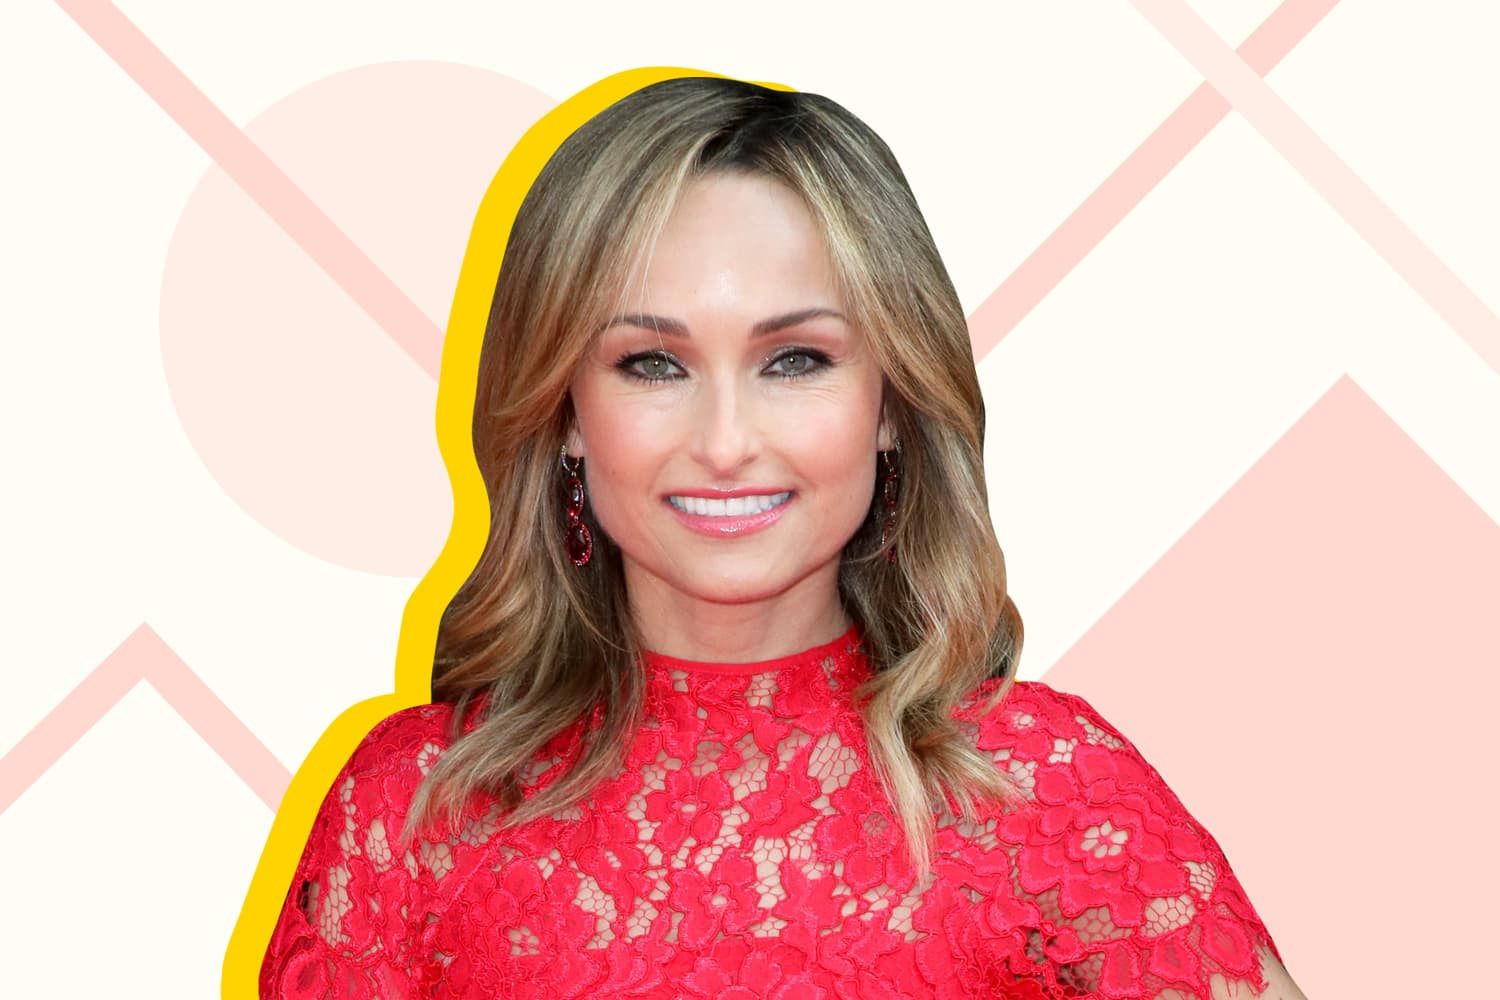 Giada's Favorite Olive Oil (Plus 7 of Her Other Top Italian Groceries)